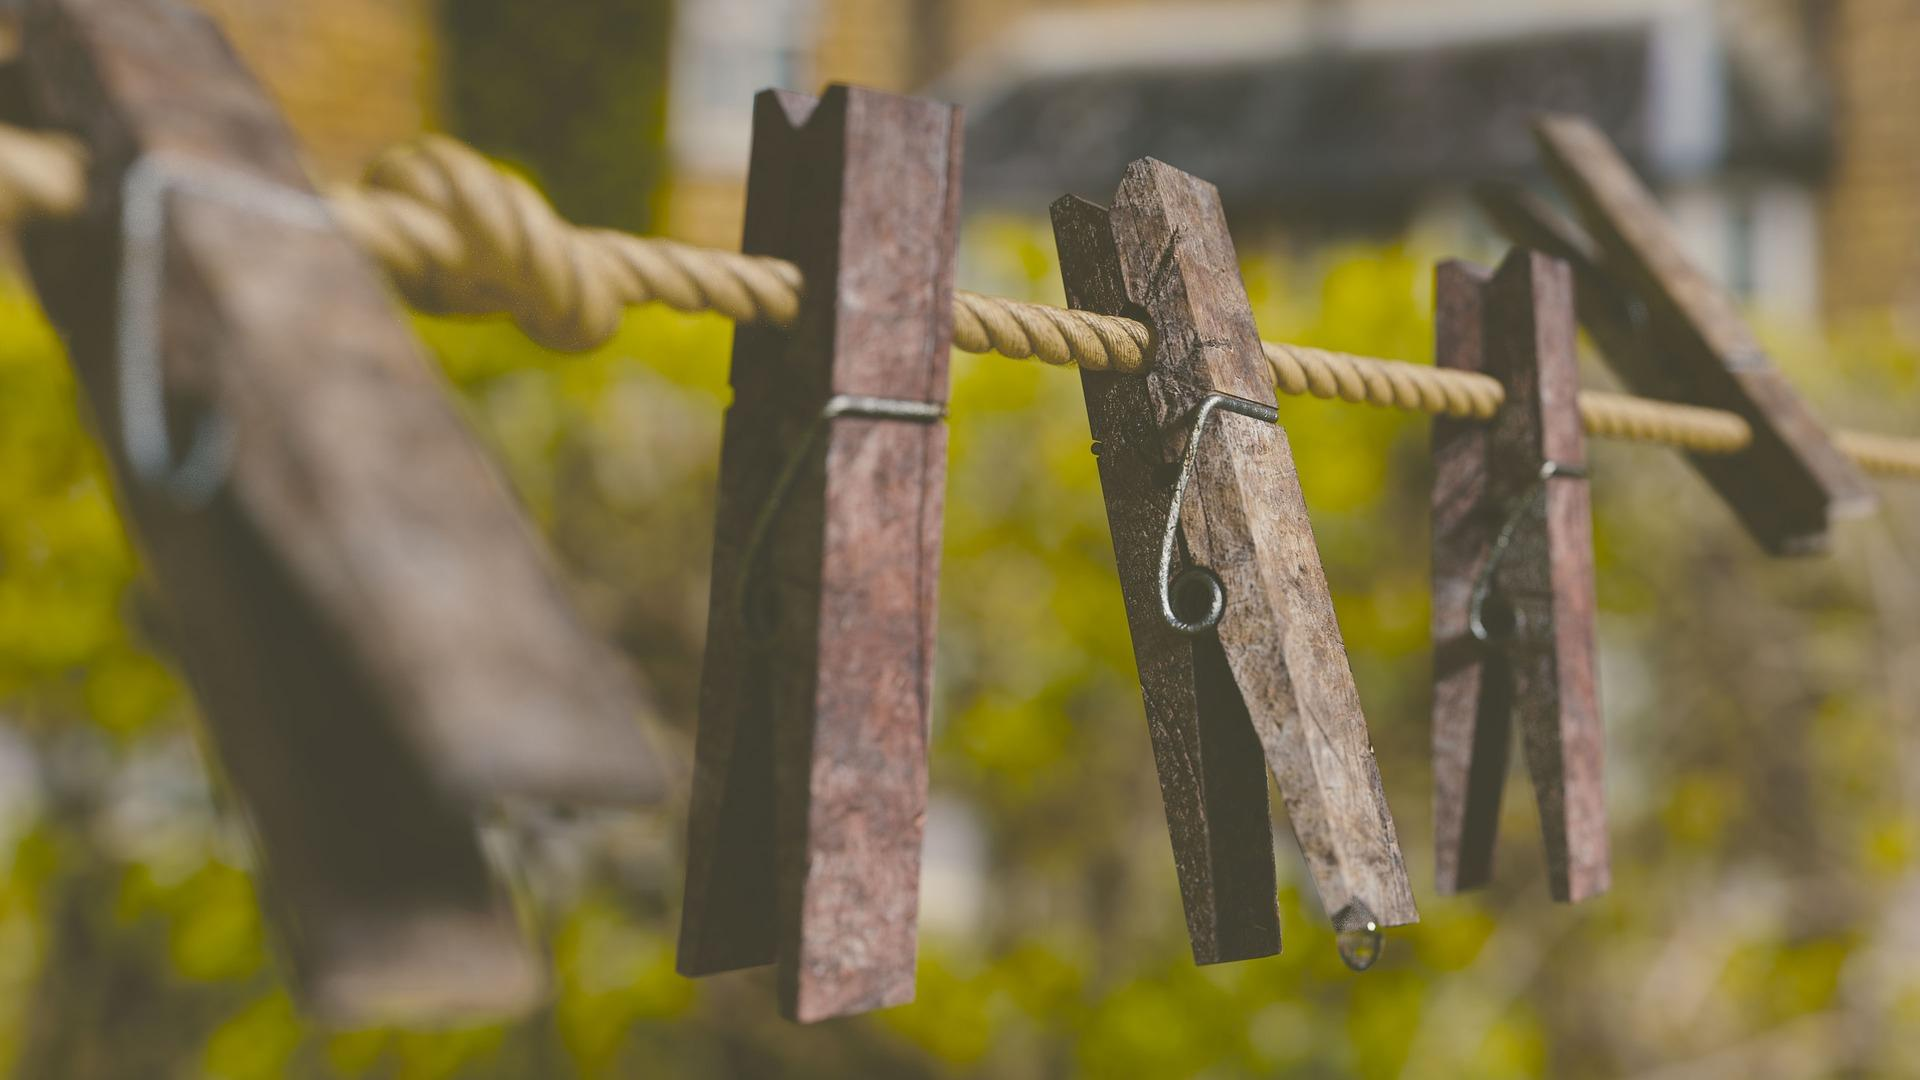 Wooden clothes pins on a twine clothesline